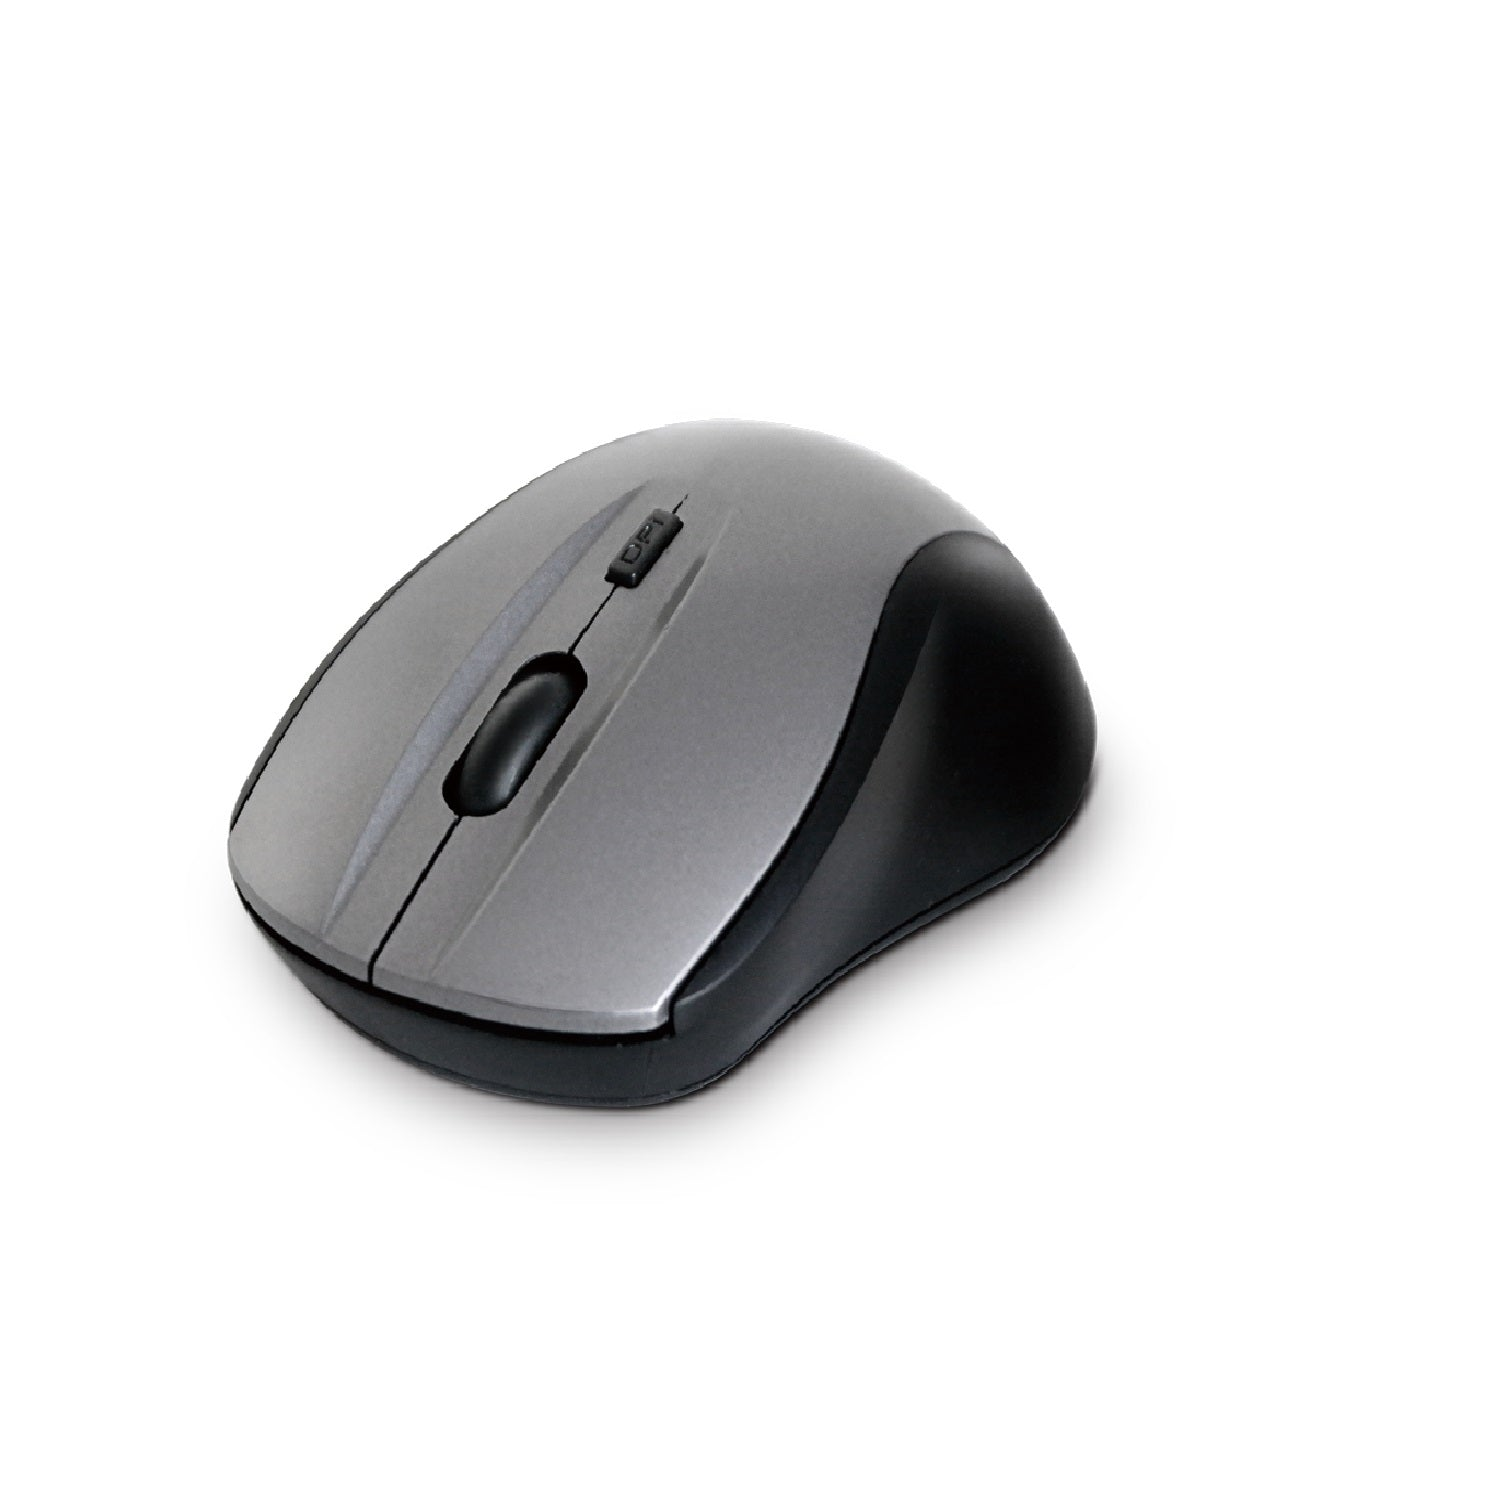 Compoint 2.4Ghz Wireless Optical Mouse with nano adapter - Grey